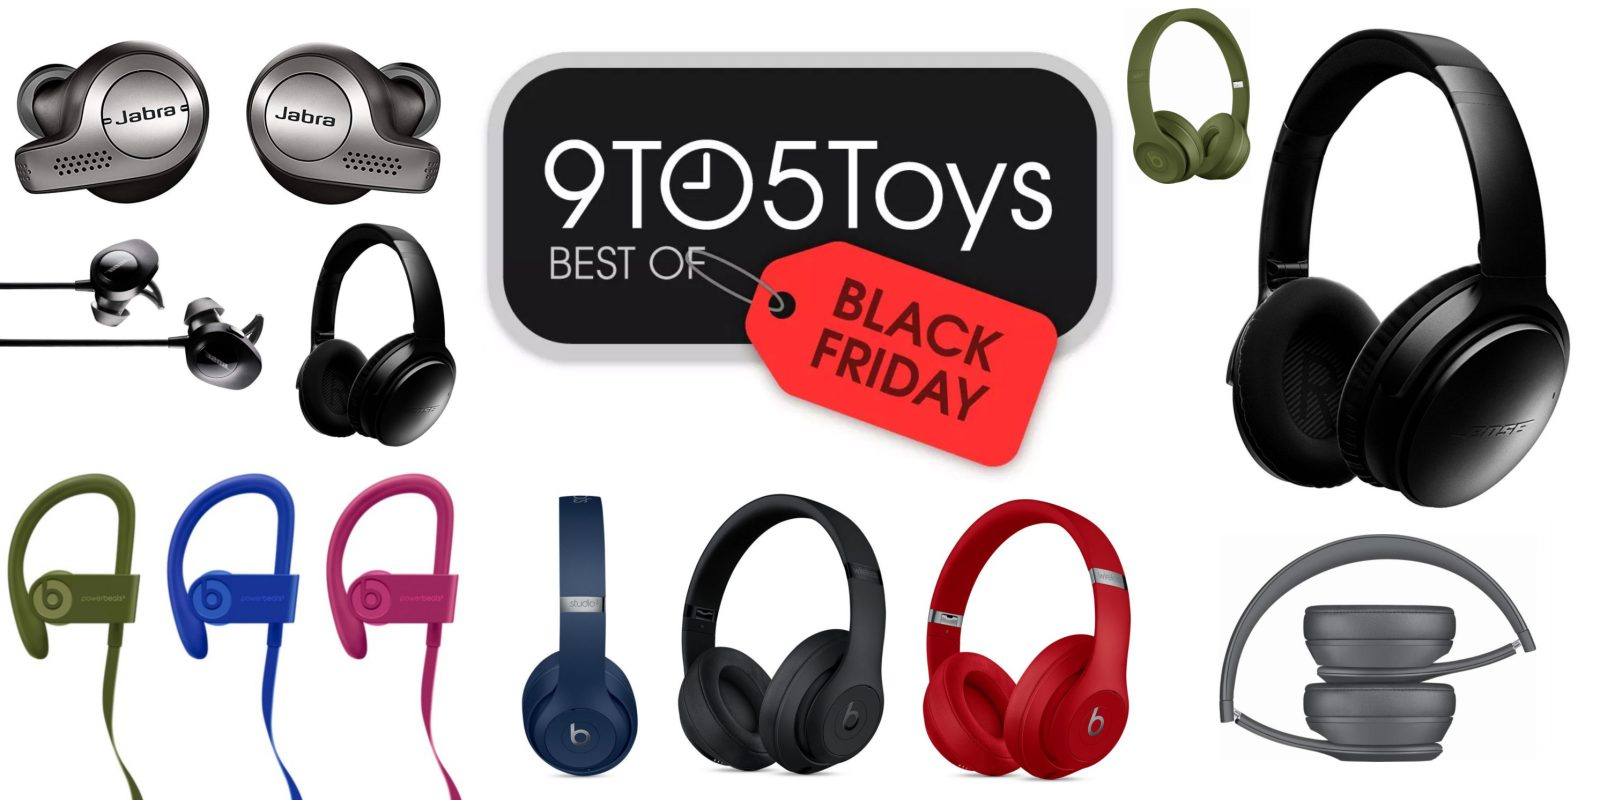 86c35614081 Best of Black Friday 2018 – Headphones: Bose QuietComfort, Beats, truly  wireless, more